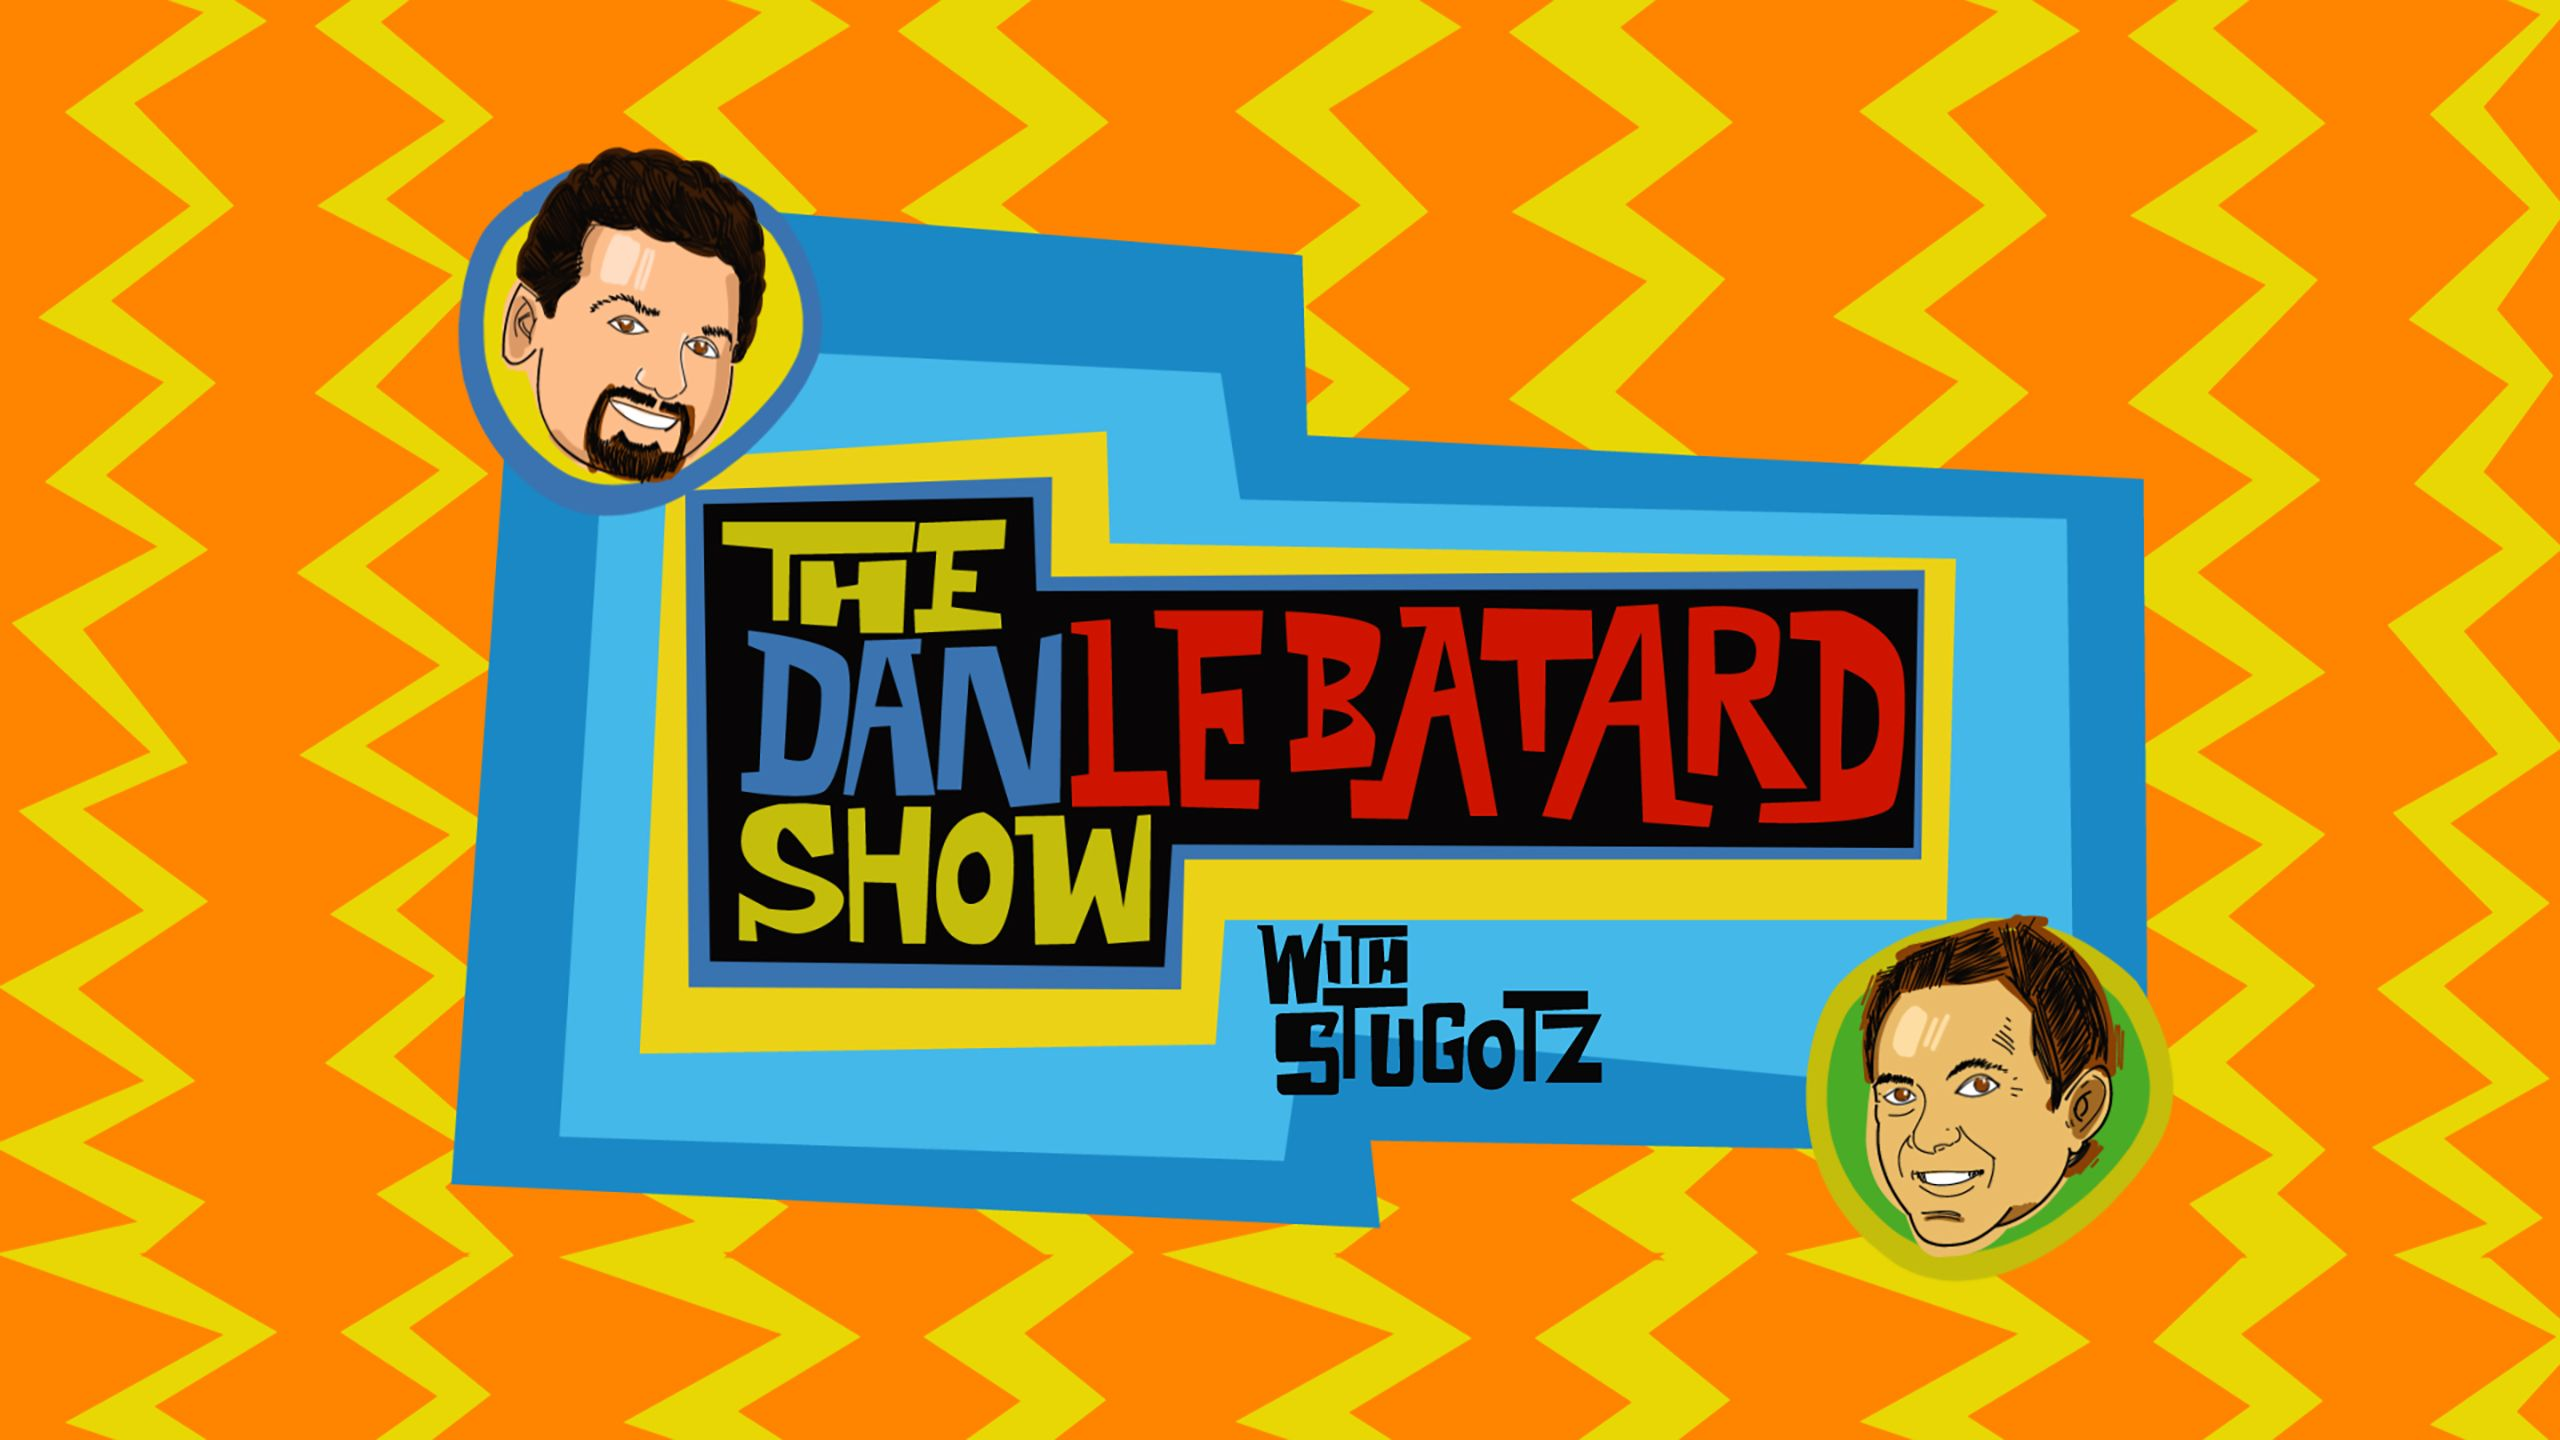 Tue, 3/20 - The Dan Le Batard Show with Stugotz Presented by Progressivee